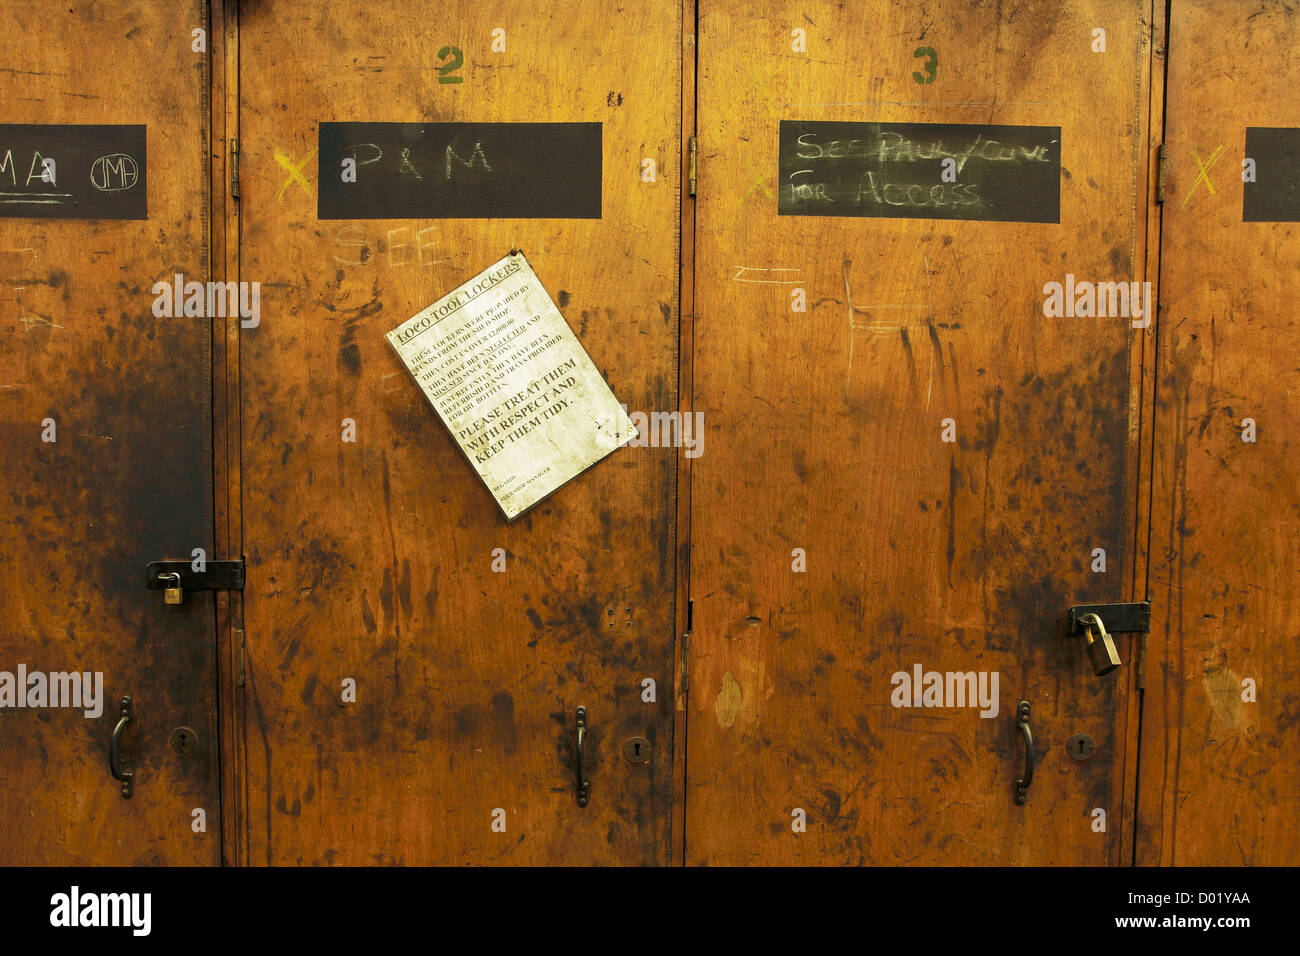 Some old worn out and abused wooden lockers with an amusing sign asking for them 'to be treated with respect' - Stock Image